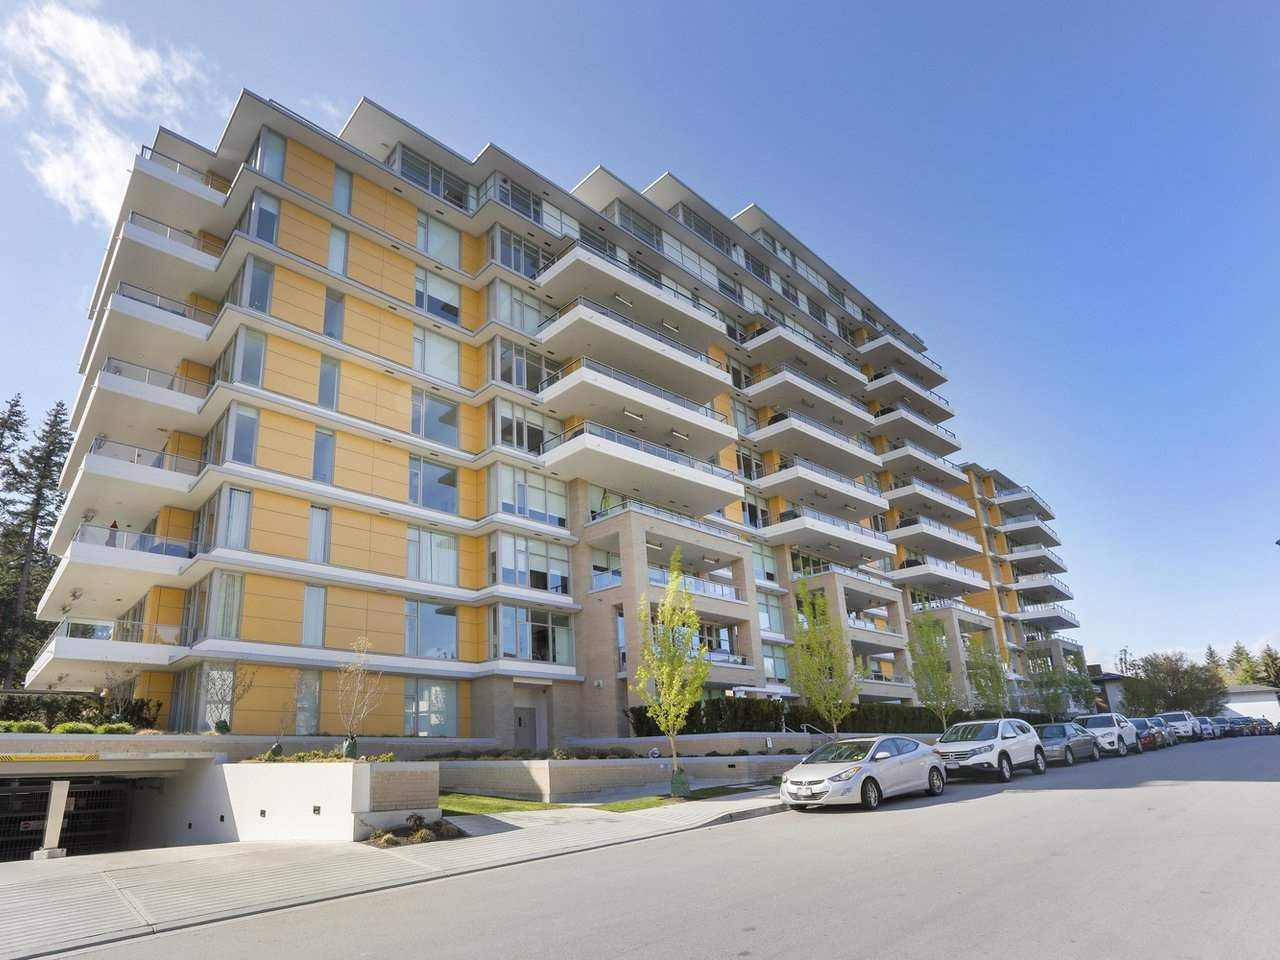 """Main Photo: 806 1501 VIDAL Street: White Rock Condo for sale in """"The Beverley"""" (South Surrey White Rock)  : MLS®# R2356186"""